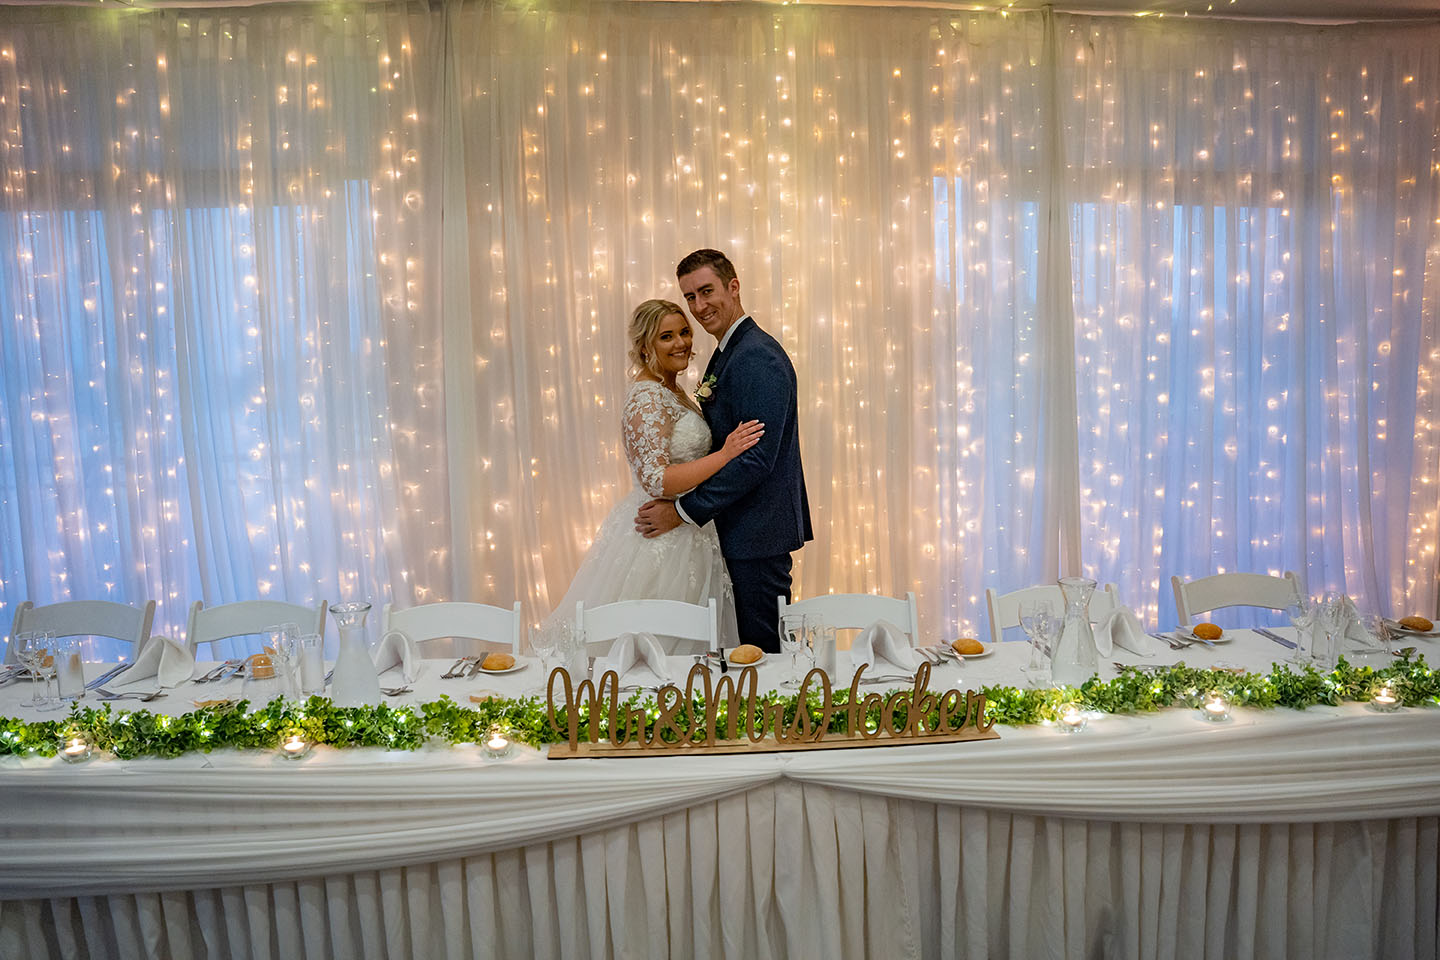 Wedding Photography - couple in front of wall of fairy lights